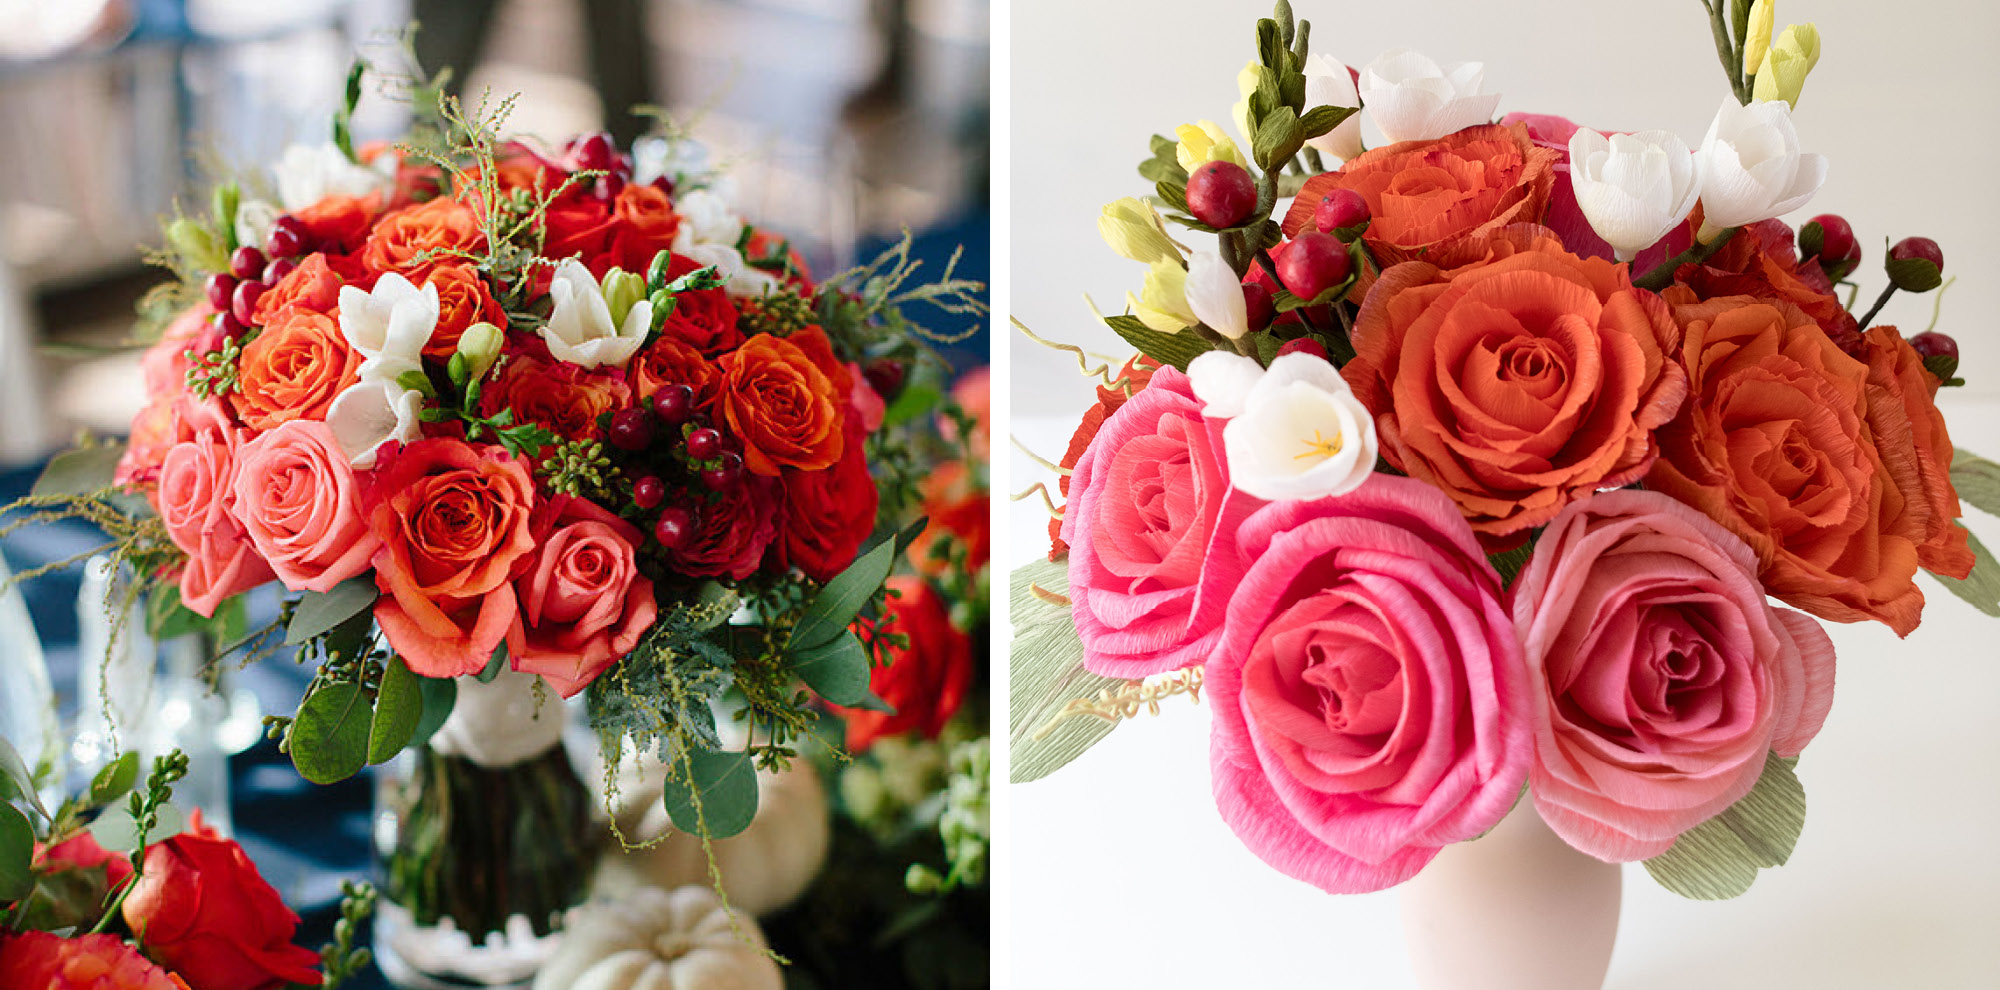 Paper Rose Co Wedding Bouquet Recreation Before & After